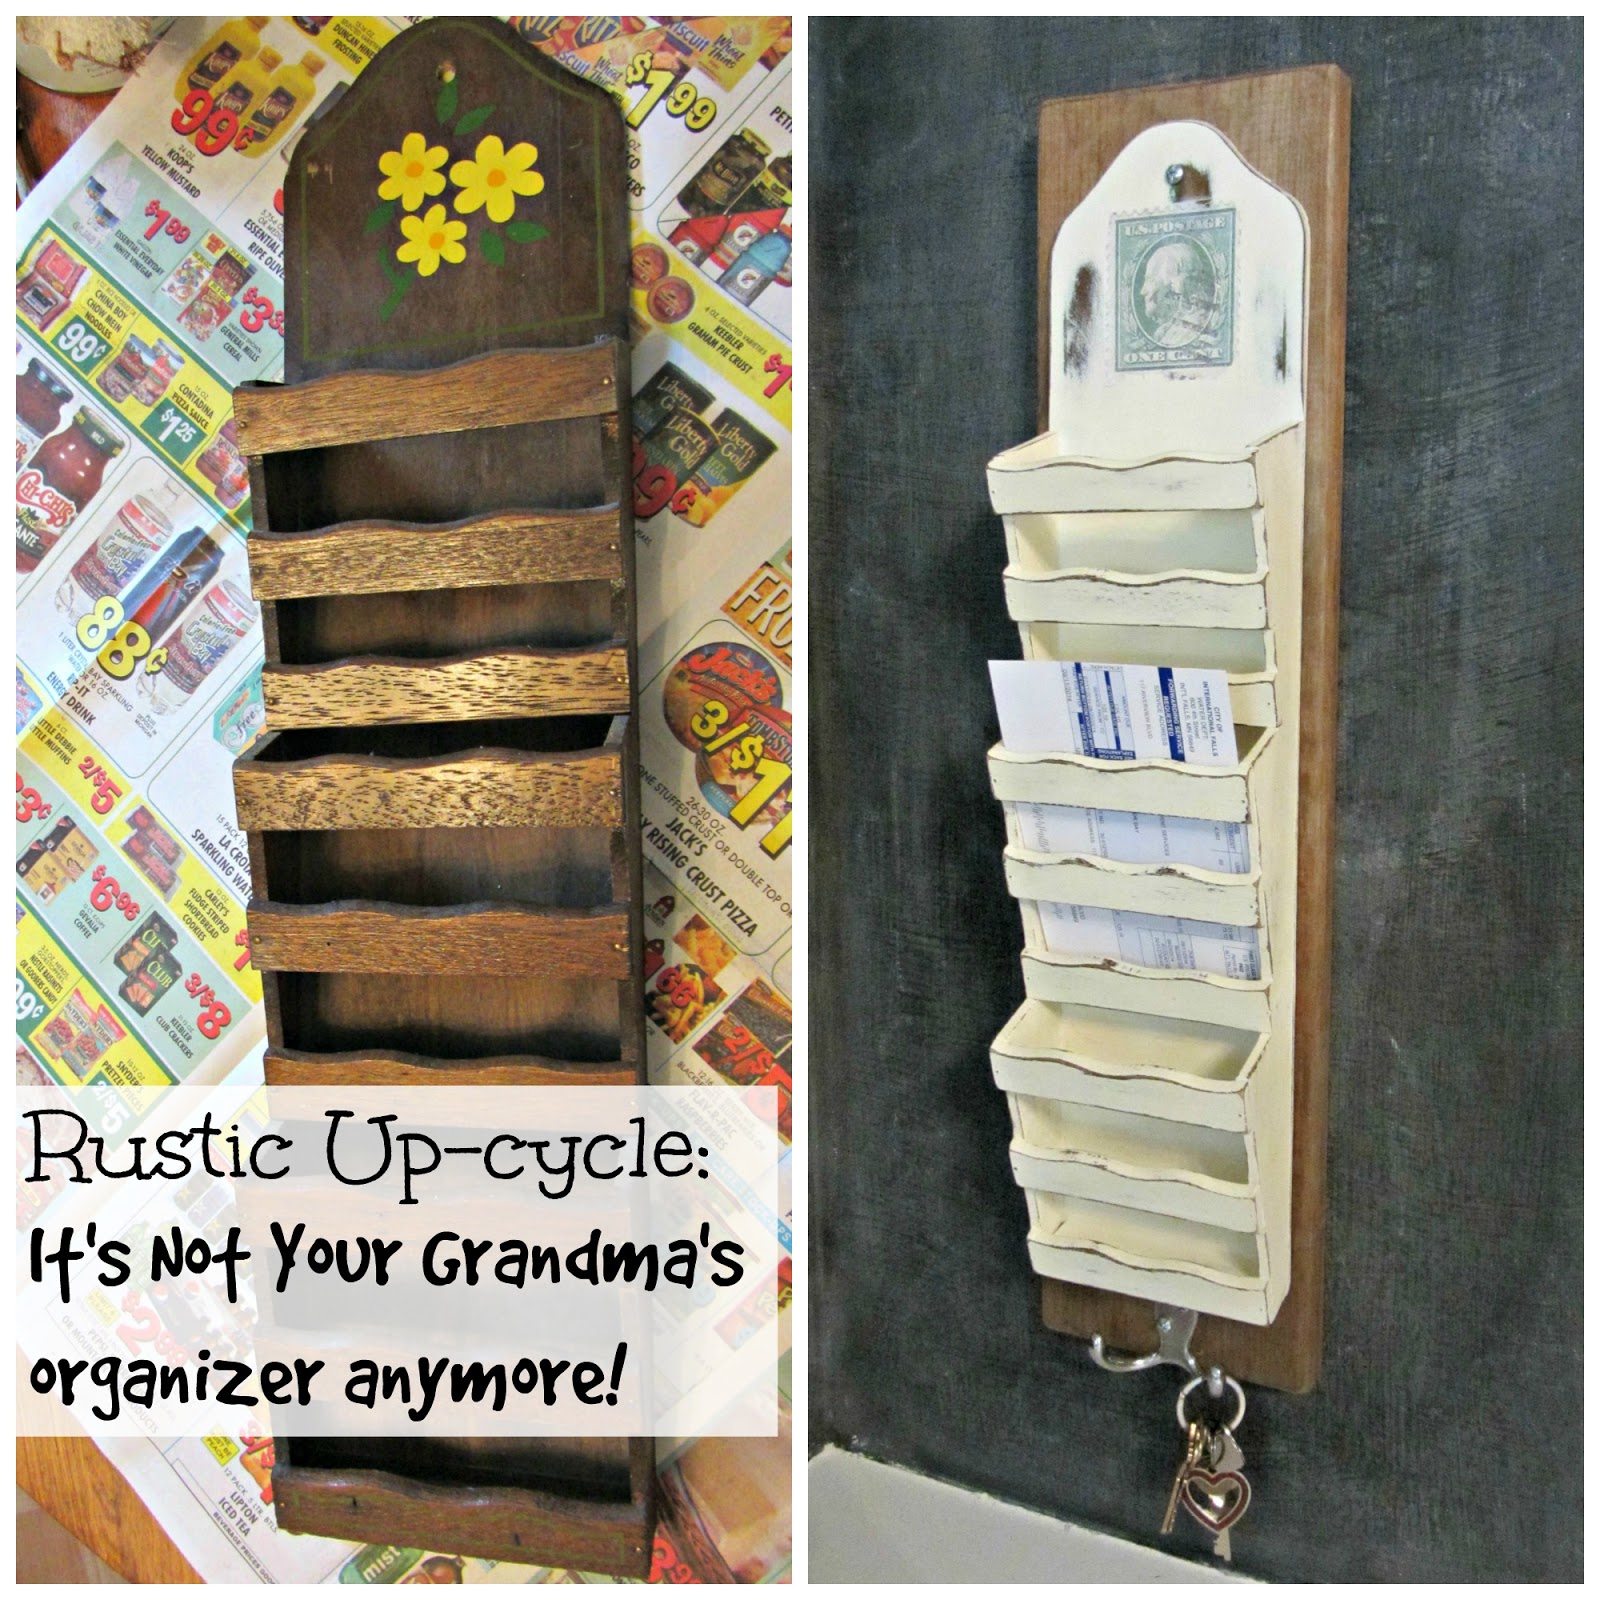 Rustic Up-Cycle of Thrift Shop Mail Organizers www.organizeclutterqueen.blogspot.com